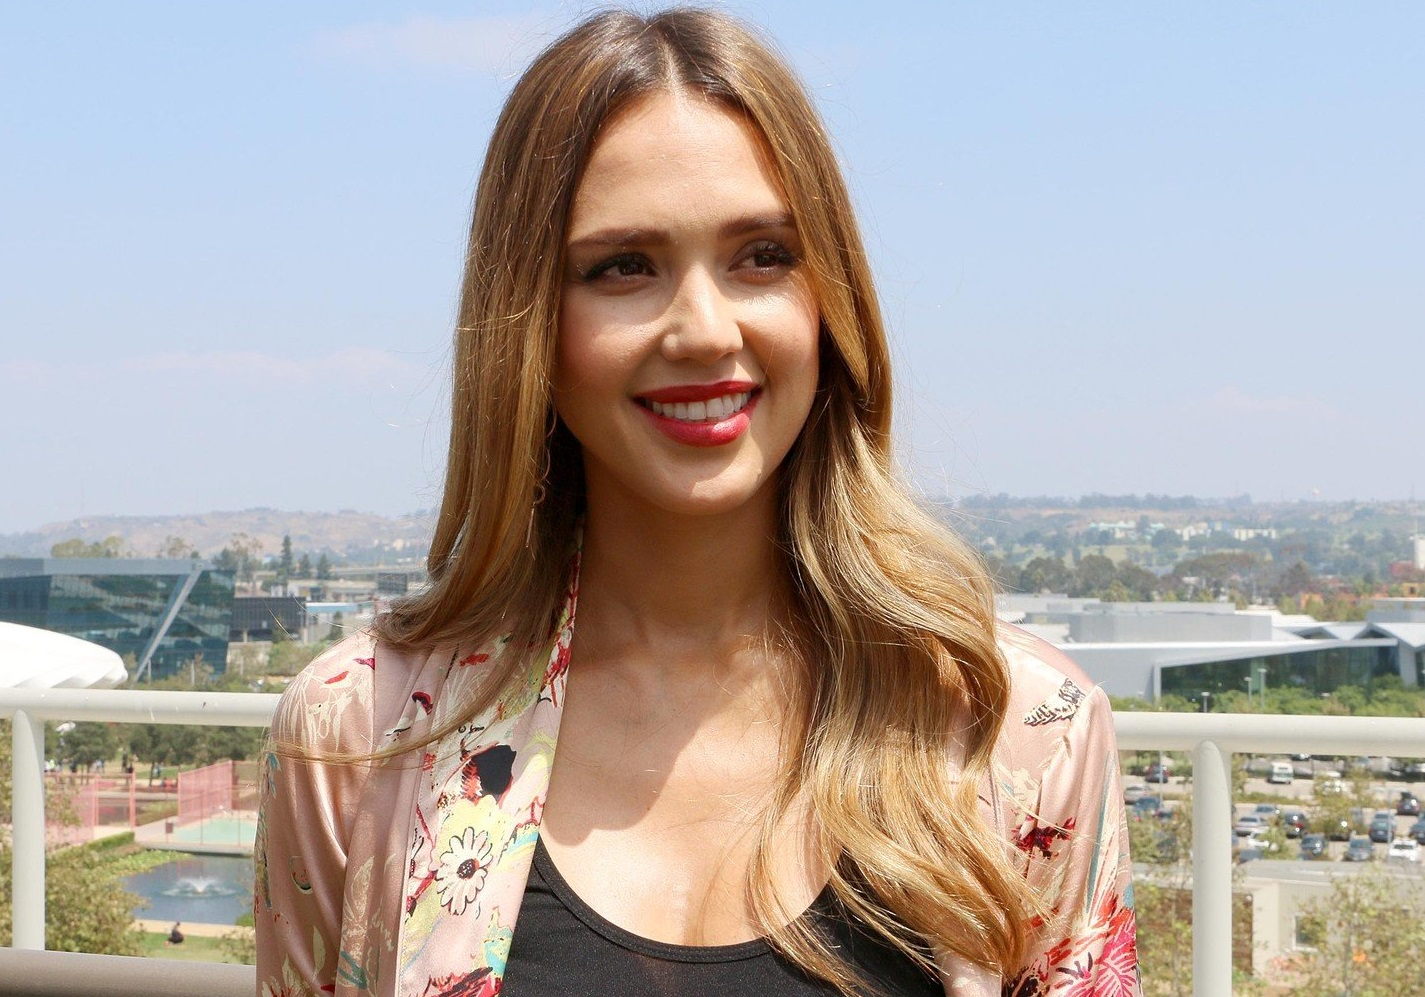 No Tabloids/No USA Rights Until 09/24/17 - Playa Vista, CA 8/24/17-Jessica Alba Attends a Press Conference to Promote her Company Honest -PICTURED: Jessica Alba -, Image: 347615413, License: Rights-managed, Restrictions: No Tabloids/No USA Rights Until 09/24/17, Model Release: no, Credit line: Profimedia, INSTAR Images